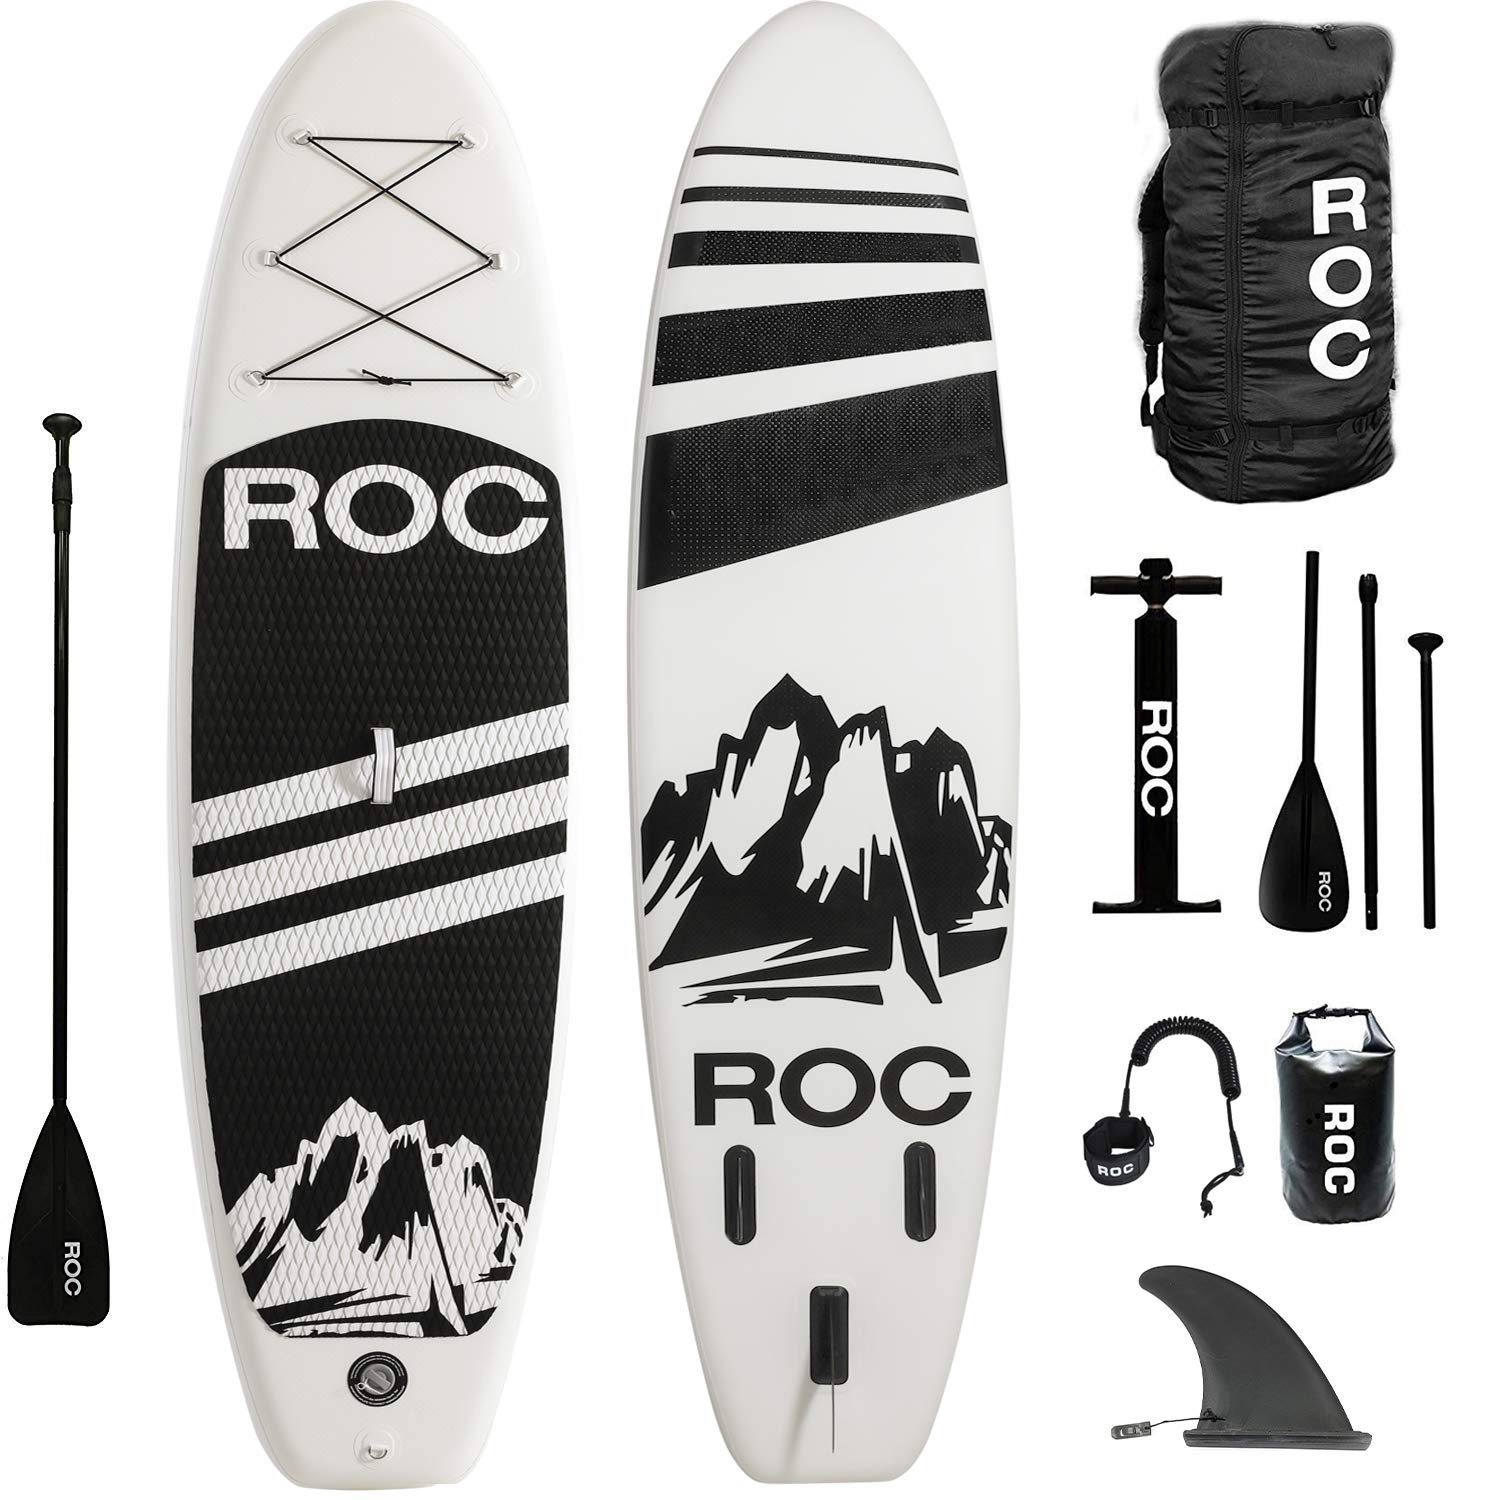 Roc Inflatable Stand Up Paddle Boards W Free Premium SUP Accessories & Backpack { Non-Slip Deck } Bonus Waterproof Bag, Leash, Paddle and Hand Pump !!! Youth & Adult (Black) by Roc